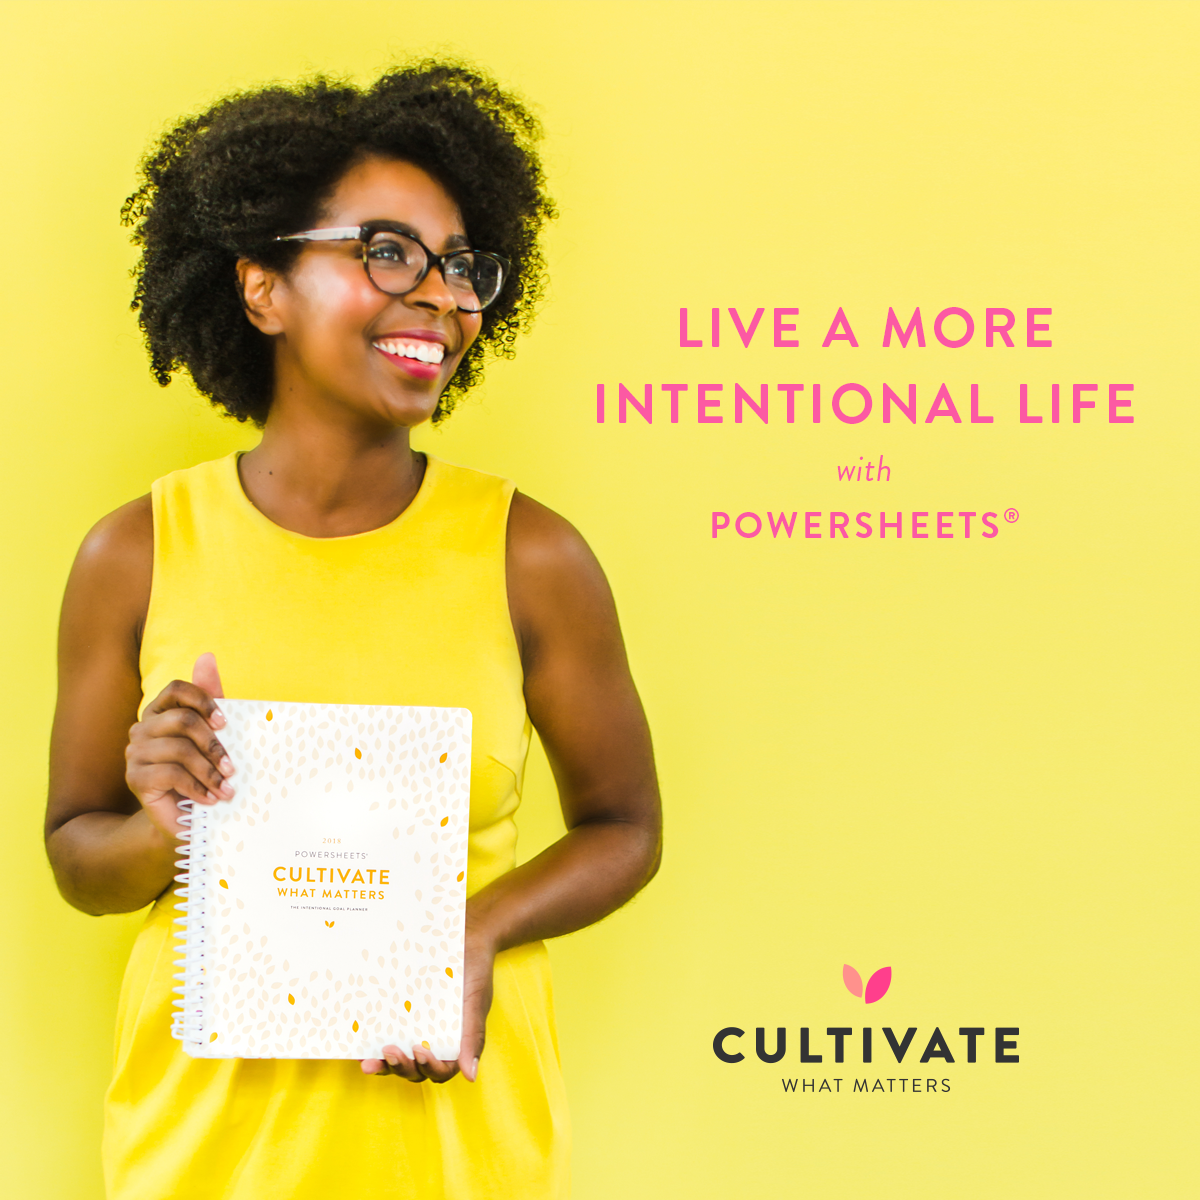 time to thrive, fruitful summer, cultivate what matters, powersheets, Lara Casey, personal growth, personal growth tips, personal development, personal developments tips, becoming disciplined, christian life coach, christian life coach for women, christian life coach for women entrepreneurs, Fearfully Fashioned